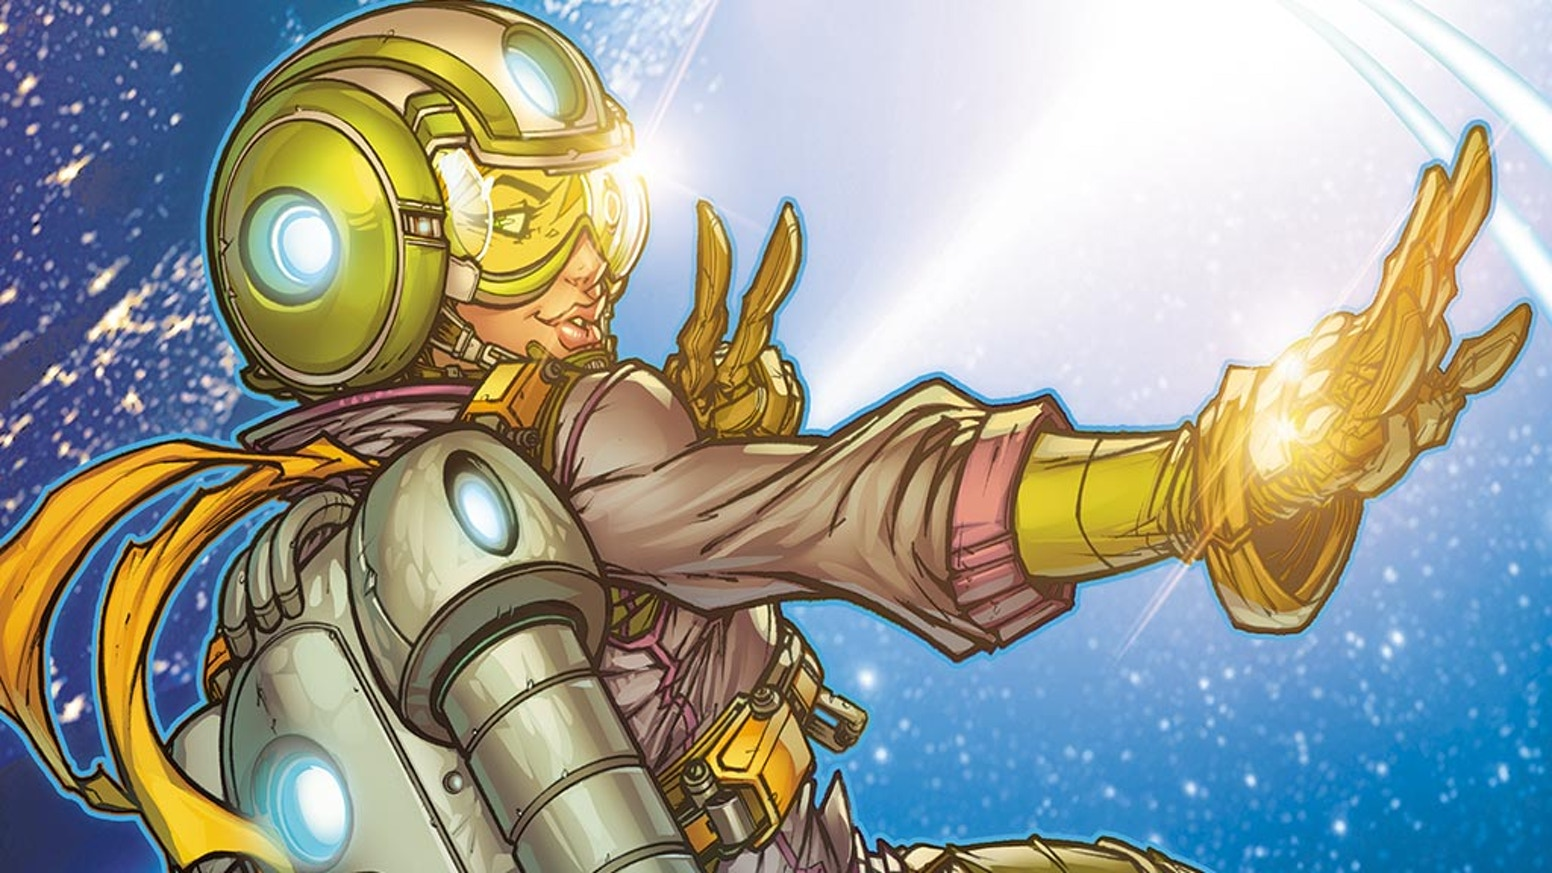 This 17-year-old girl yearns to fly her jetpack across the SOLAR SYSTEM! JUPITER JET returns in a NEW sci-fi adventure graphic novel!